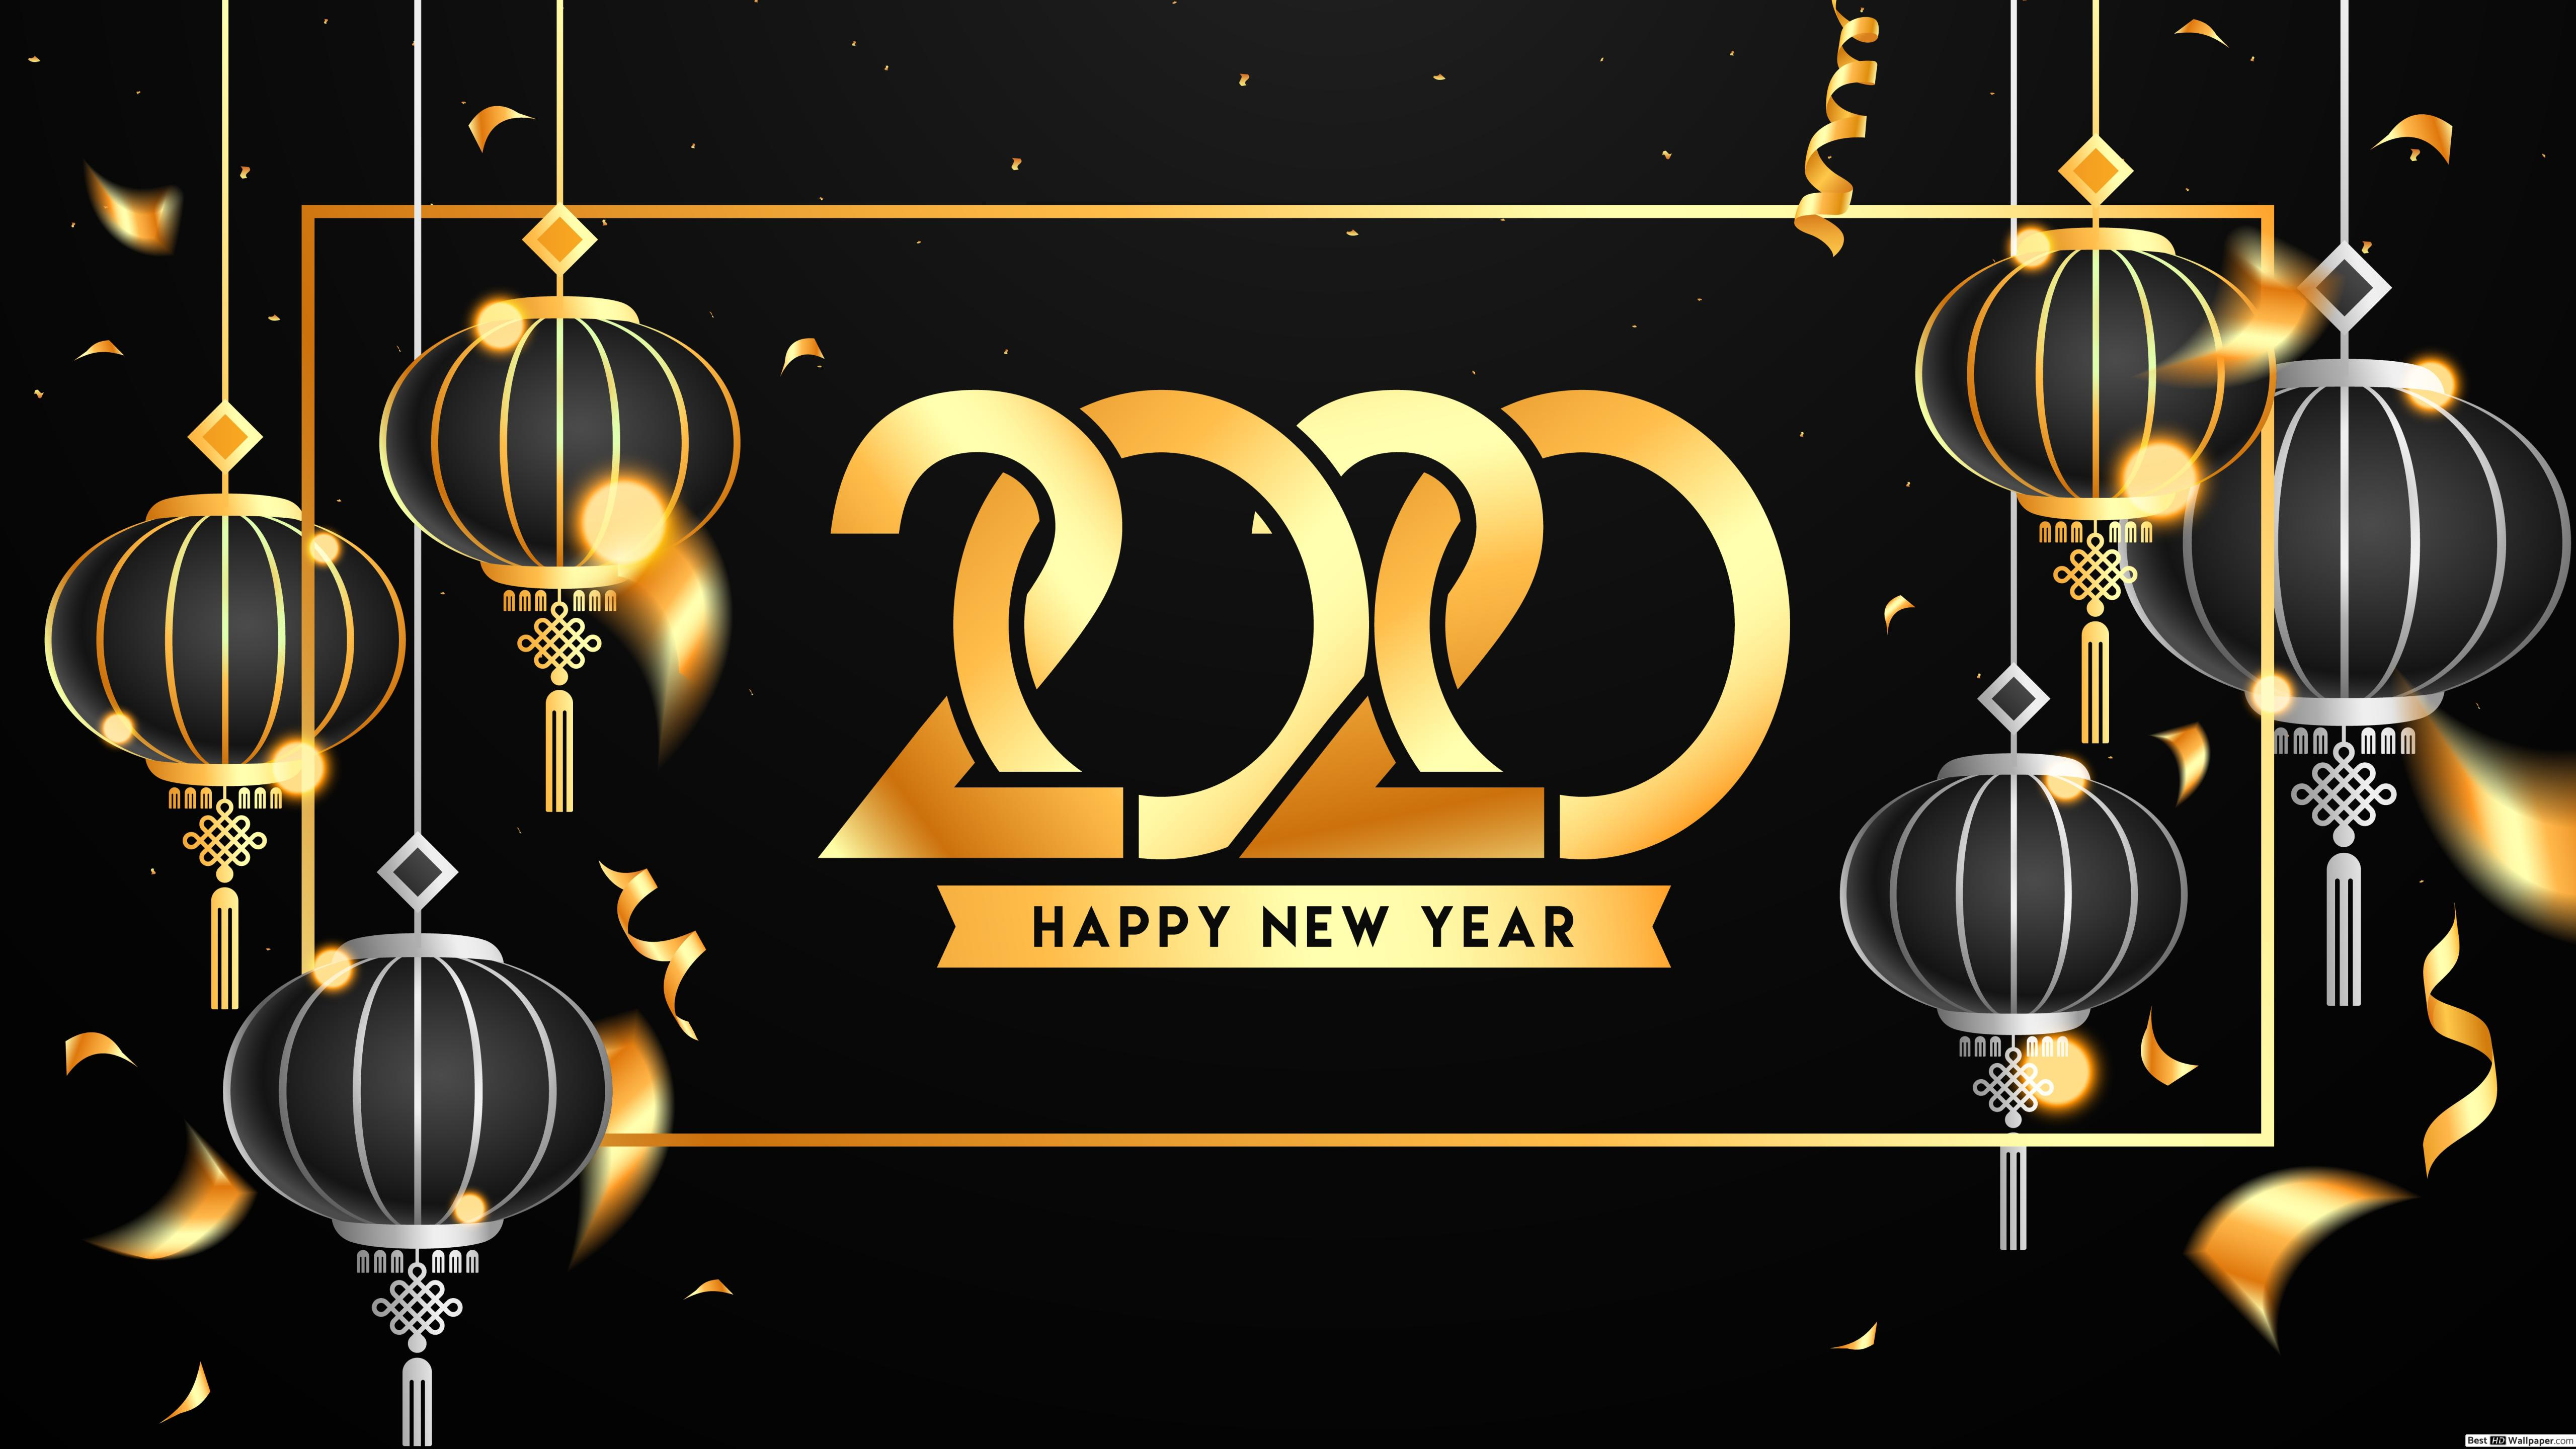 Year 2020 with gold and black chinese lanterns decorations HD 5120x2880